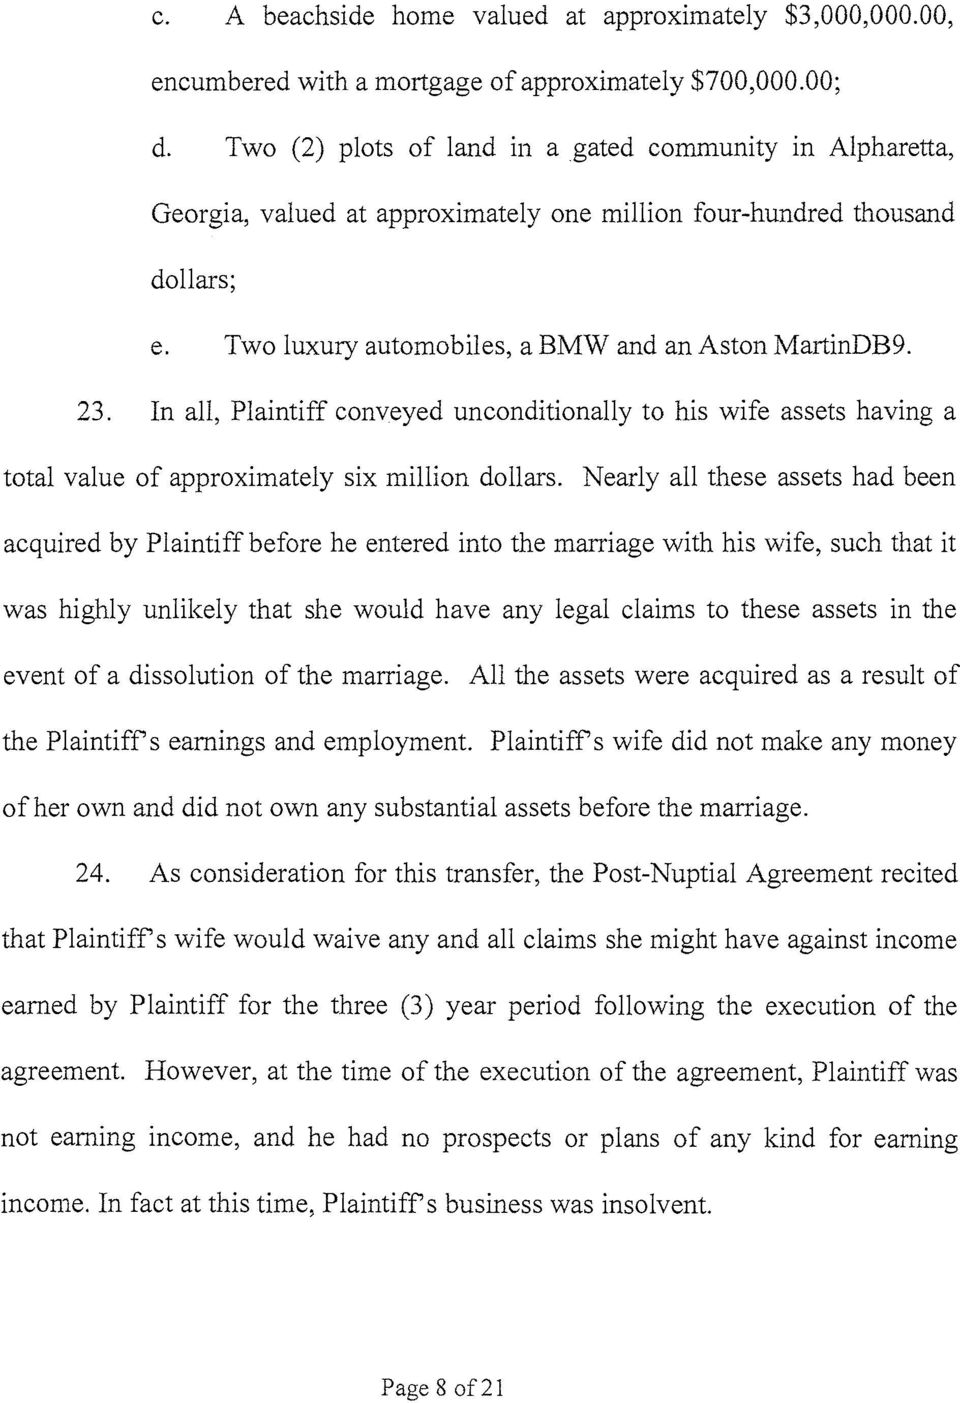 In all, Plaintiff conveyed unconditionally to his wife assets having a total value of approximately six million dollars.